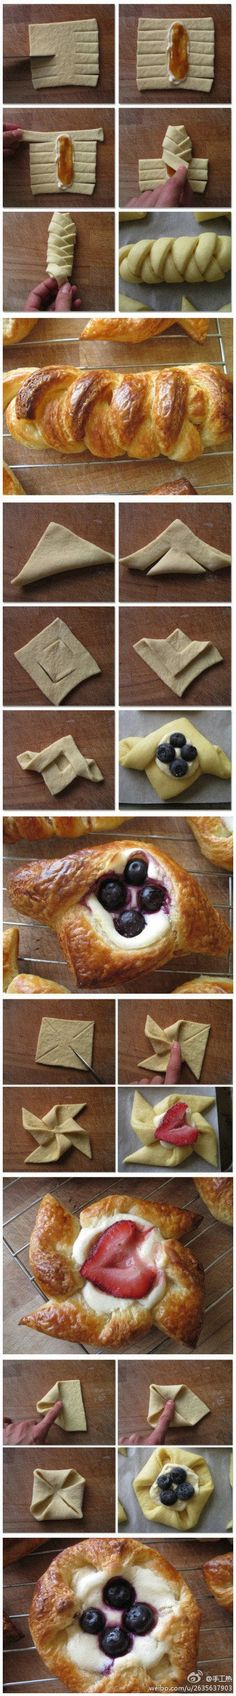 Creative pastry folds